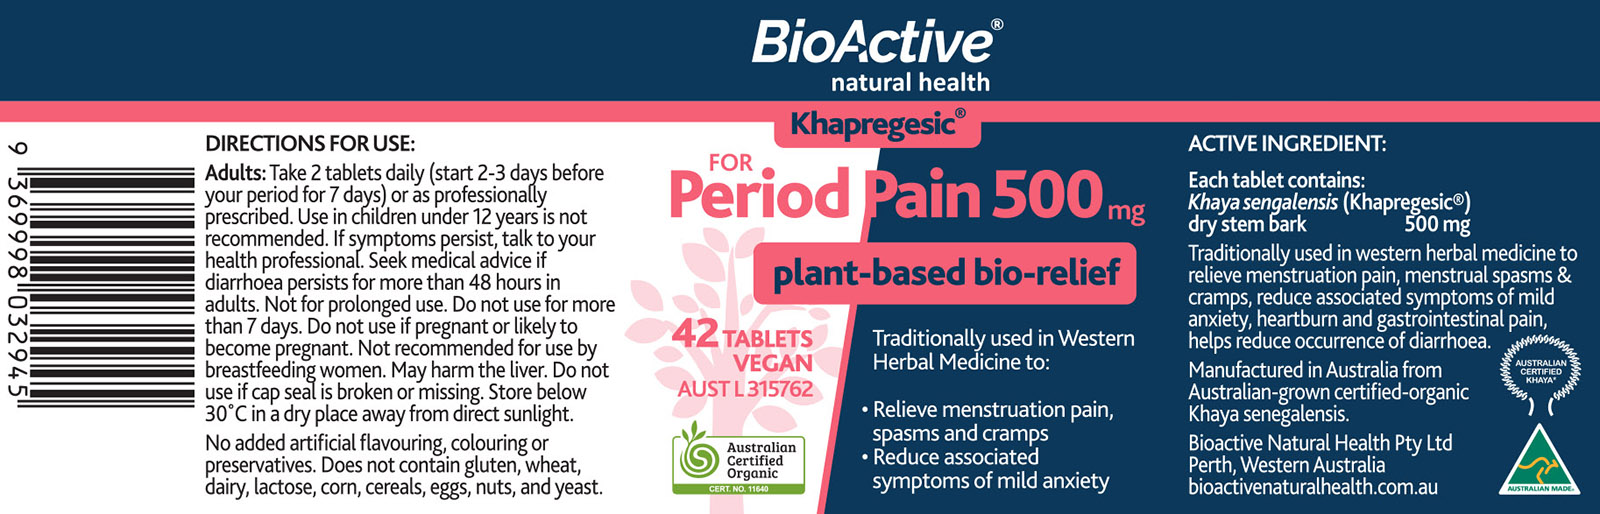 Khapregesic® for Period Pain 500mg